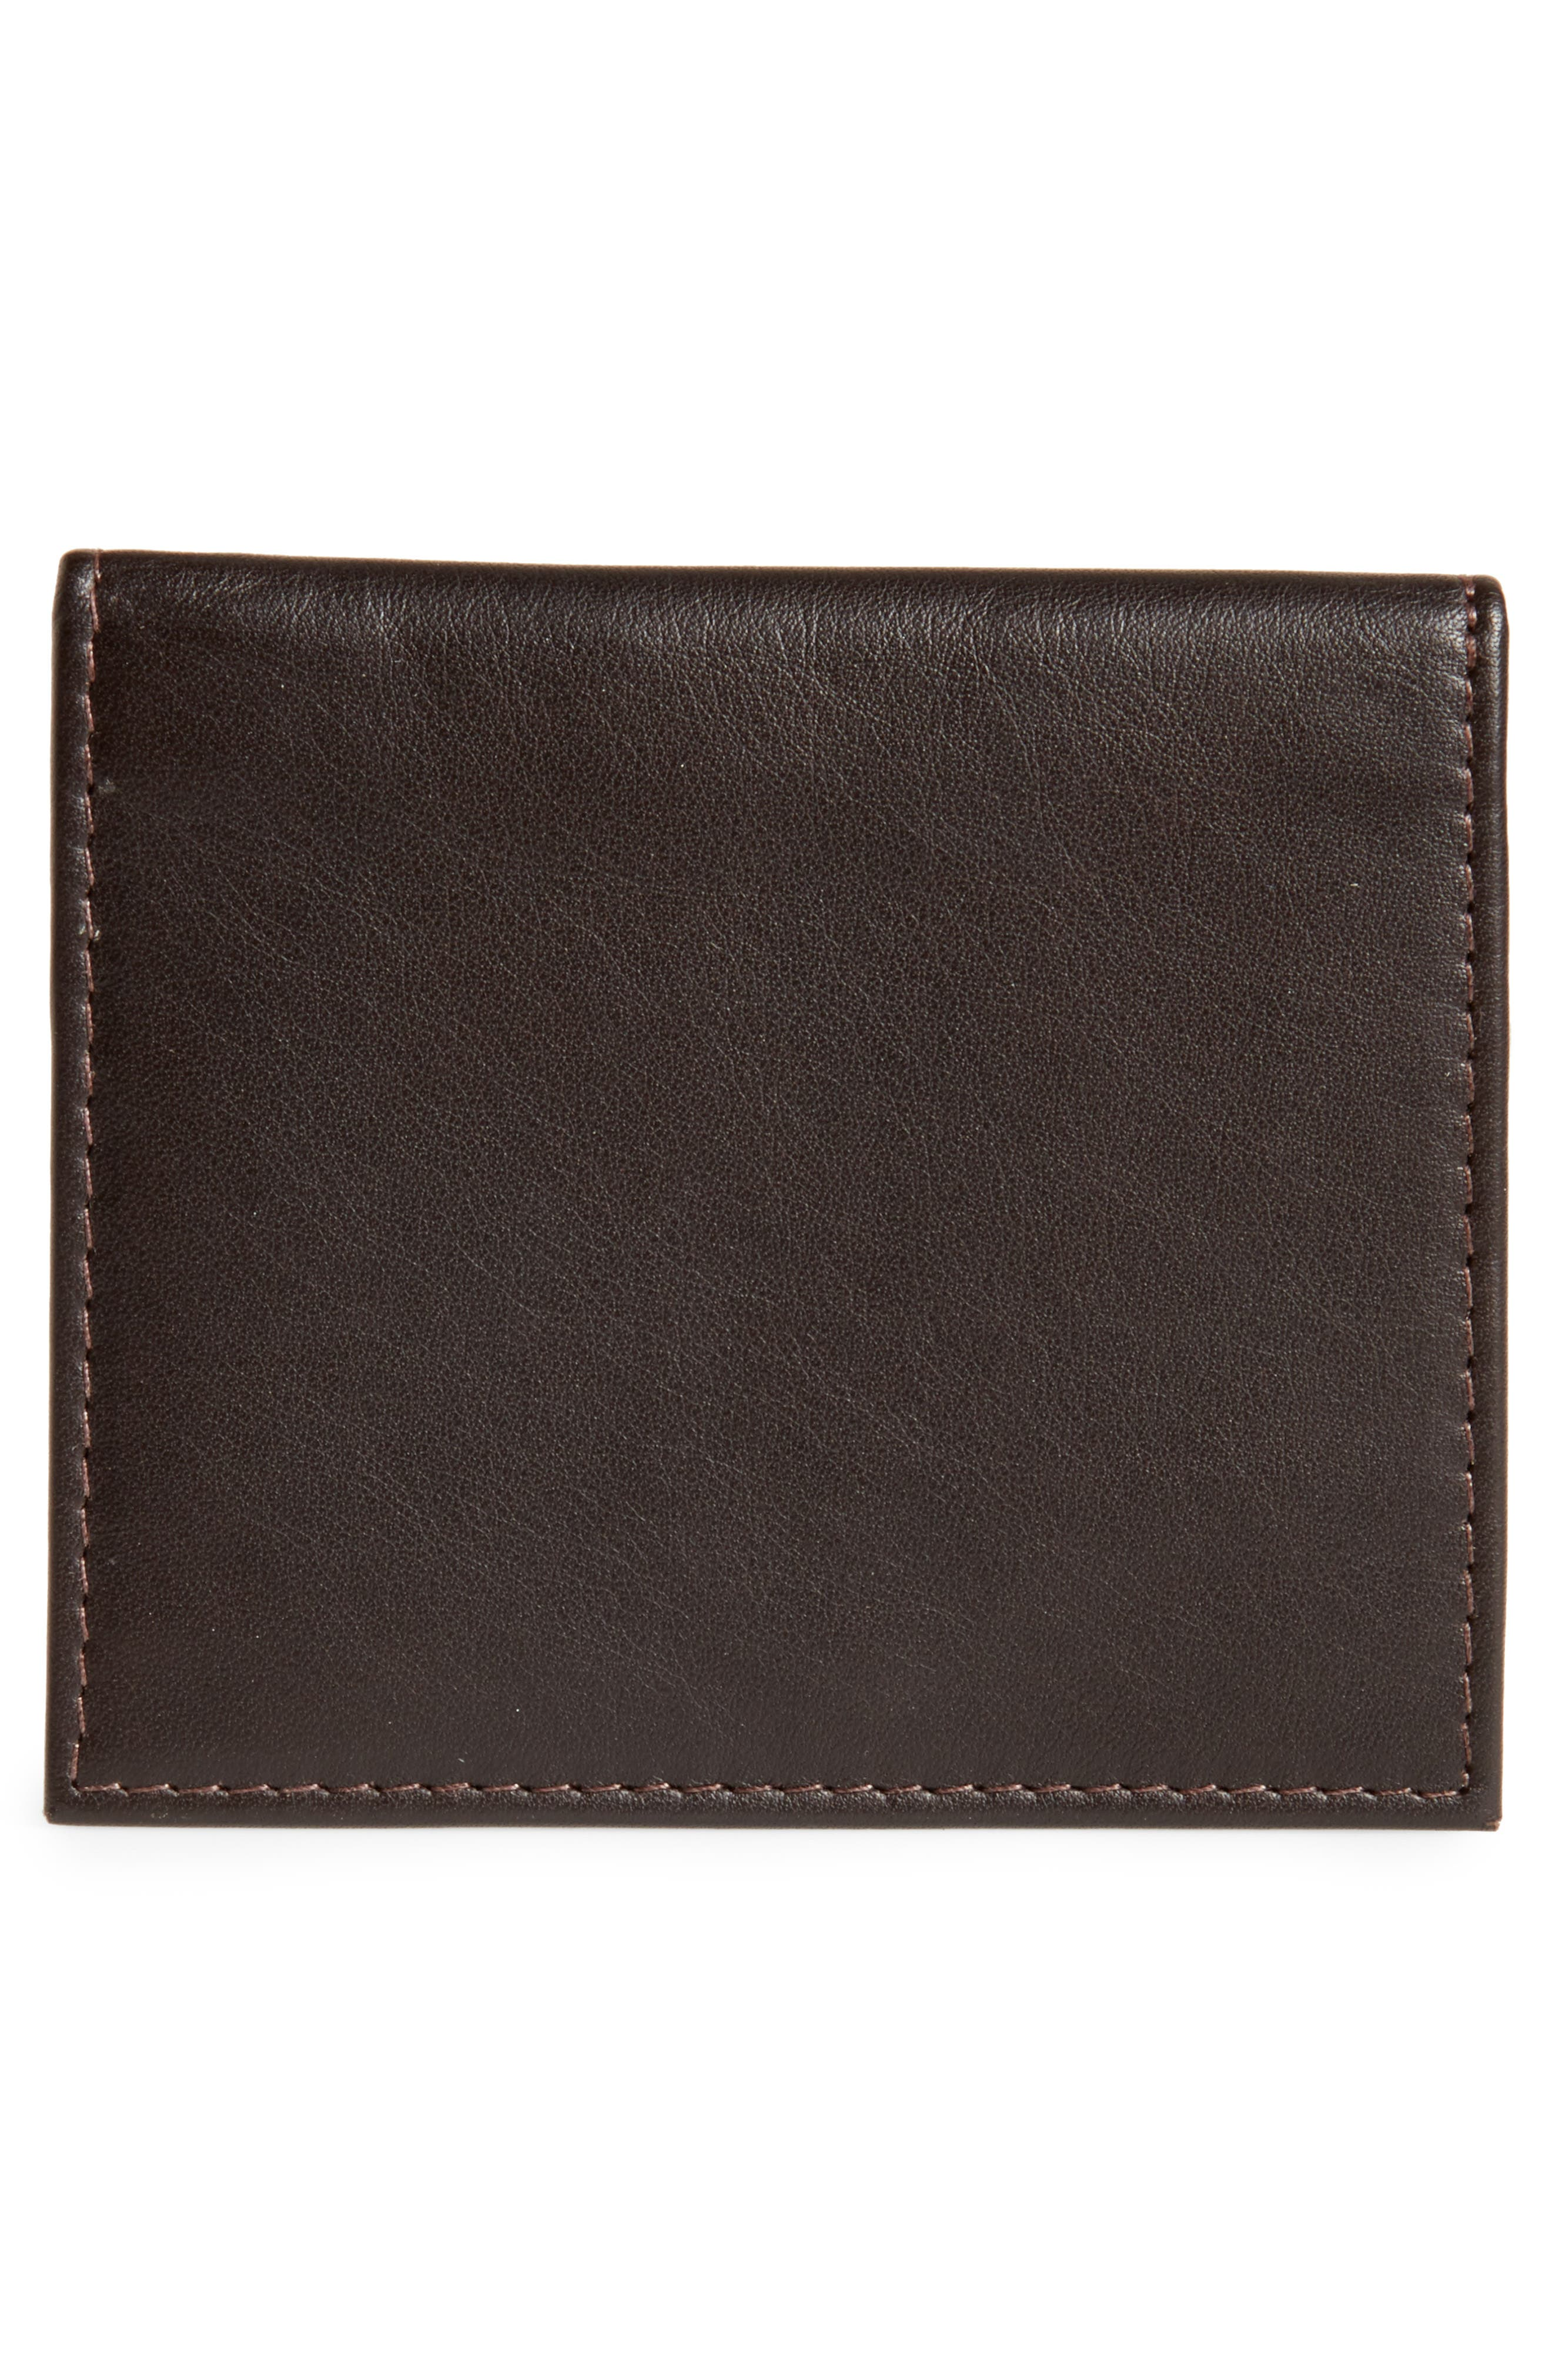 Foxes Stripe Leather Foldover Card Case,                             Alternate thumbnail 3, color,                             Chocolate